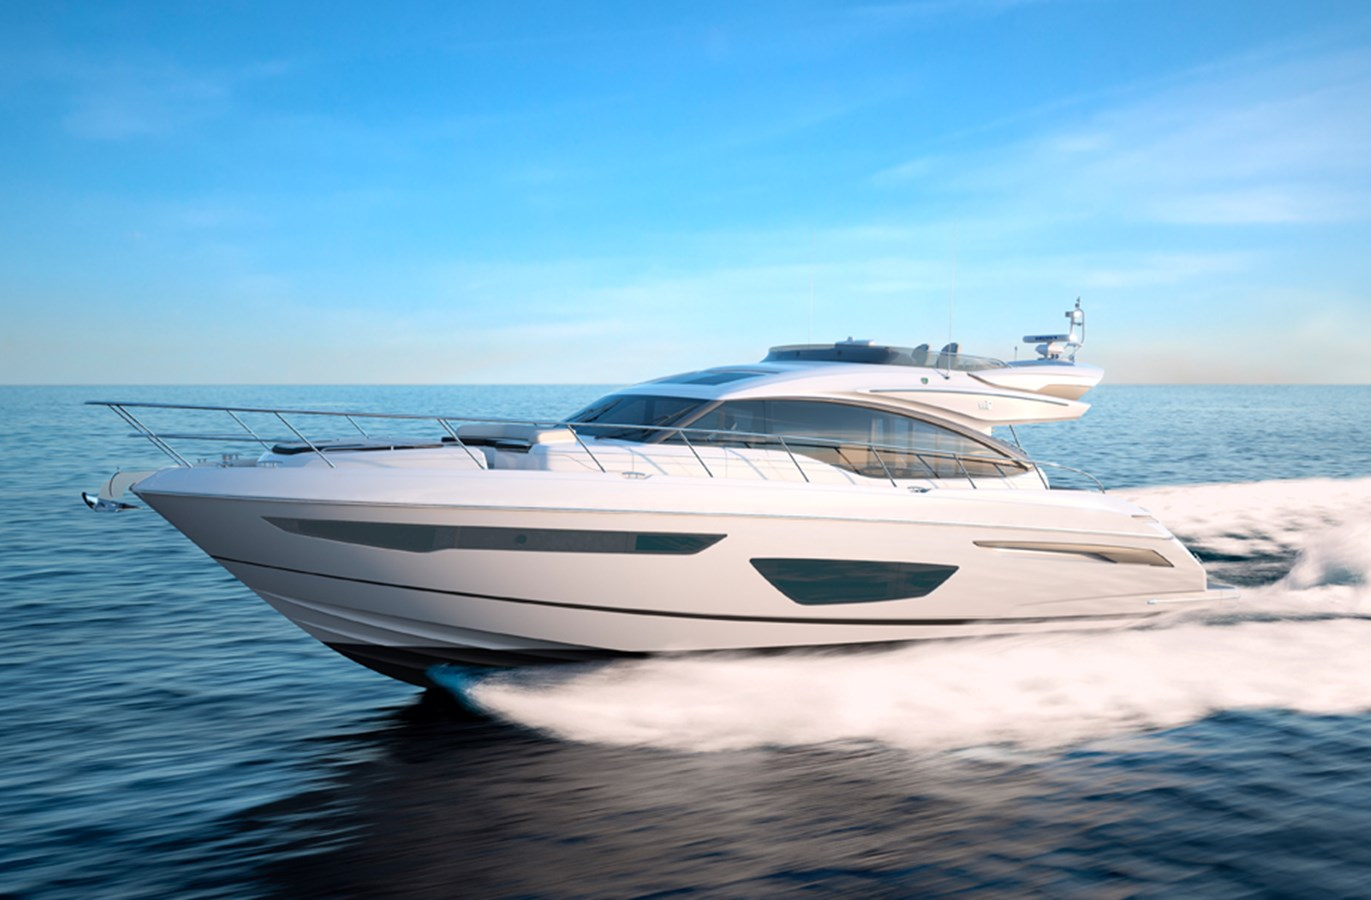 New Princess S65 Yachts For Sale